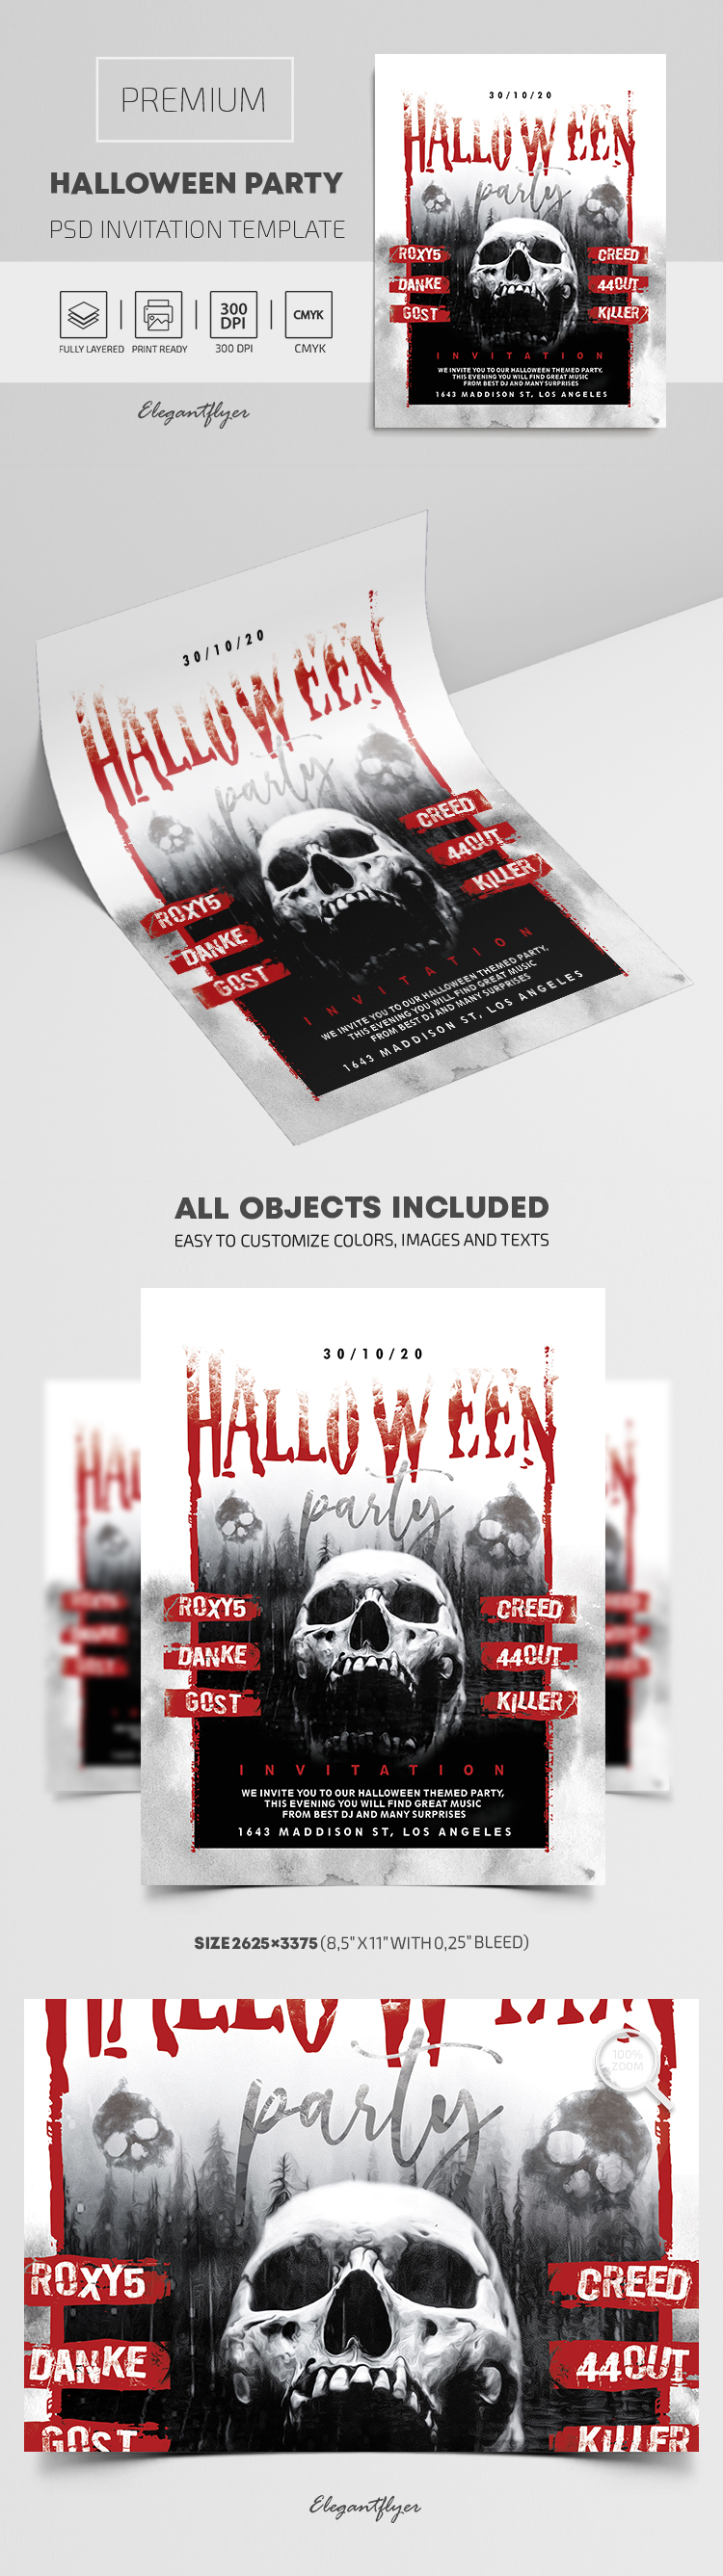 Premium Halloween Party Invitation PSD Template